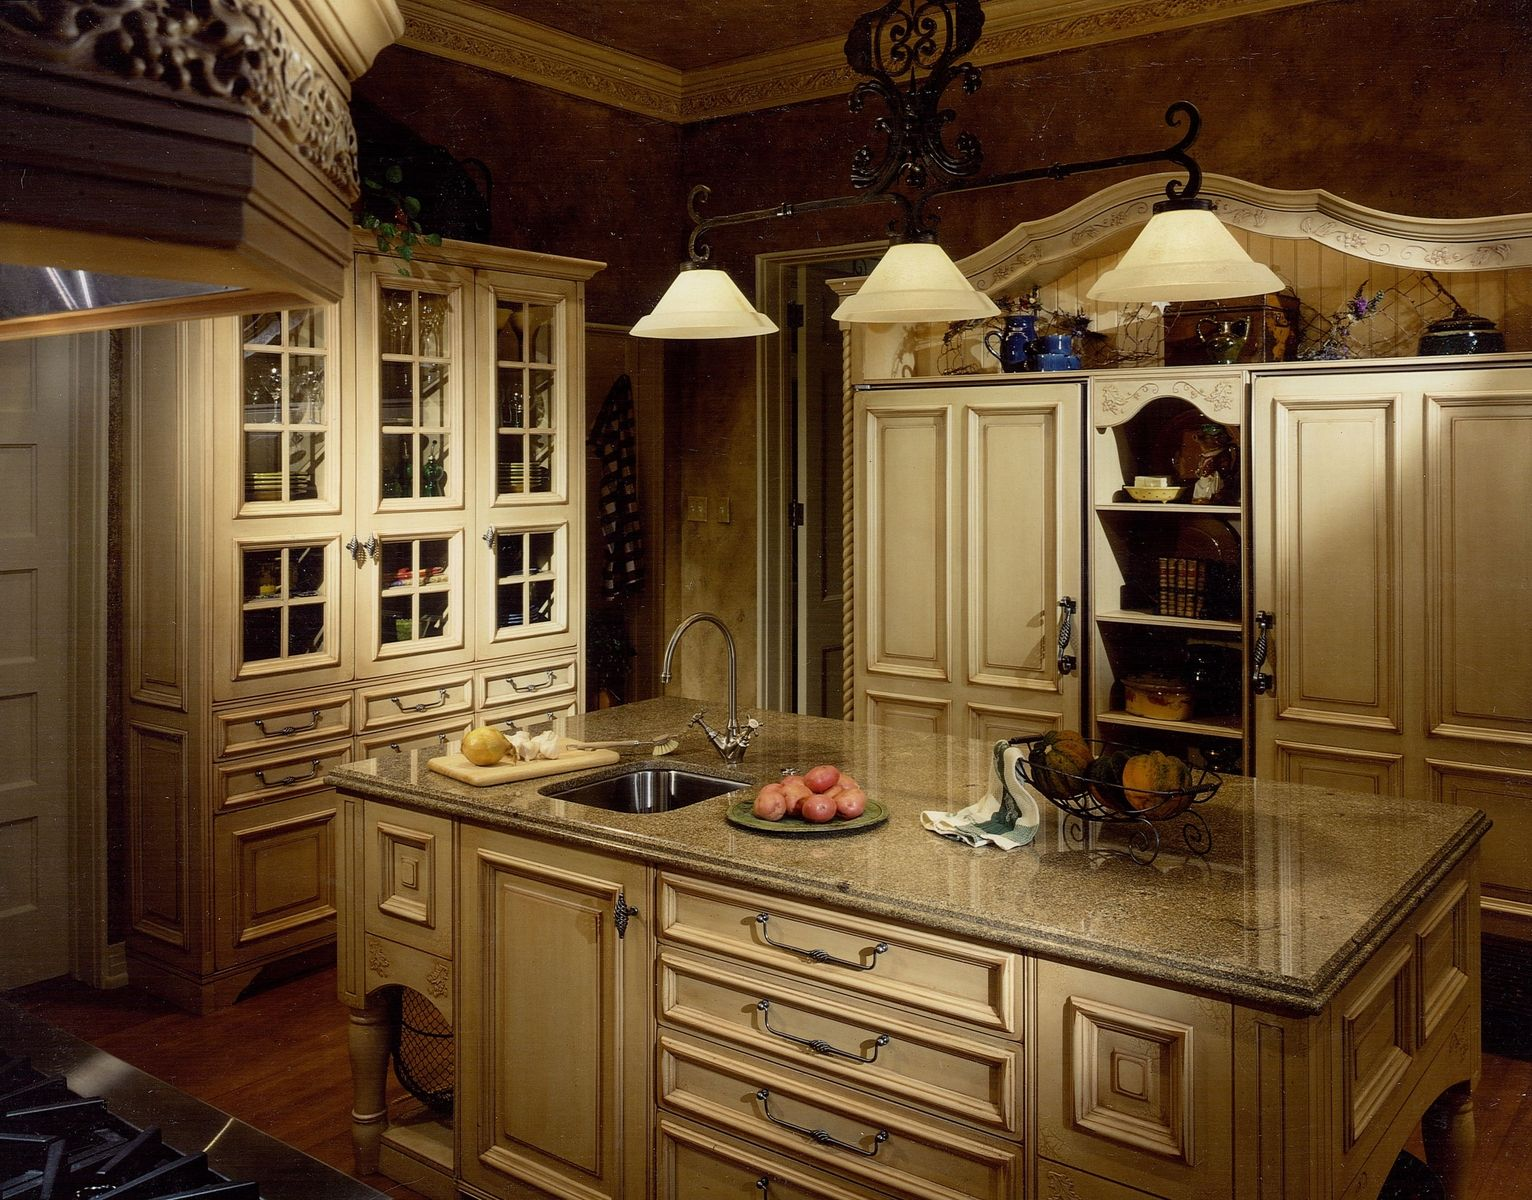 French country kitchen cabinets design